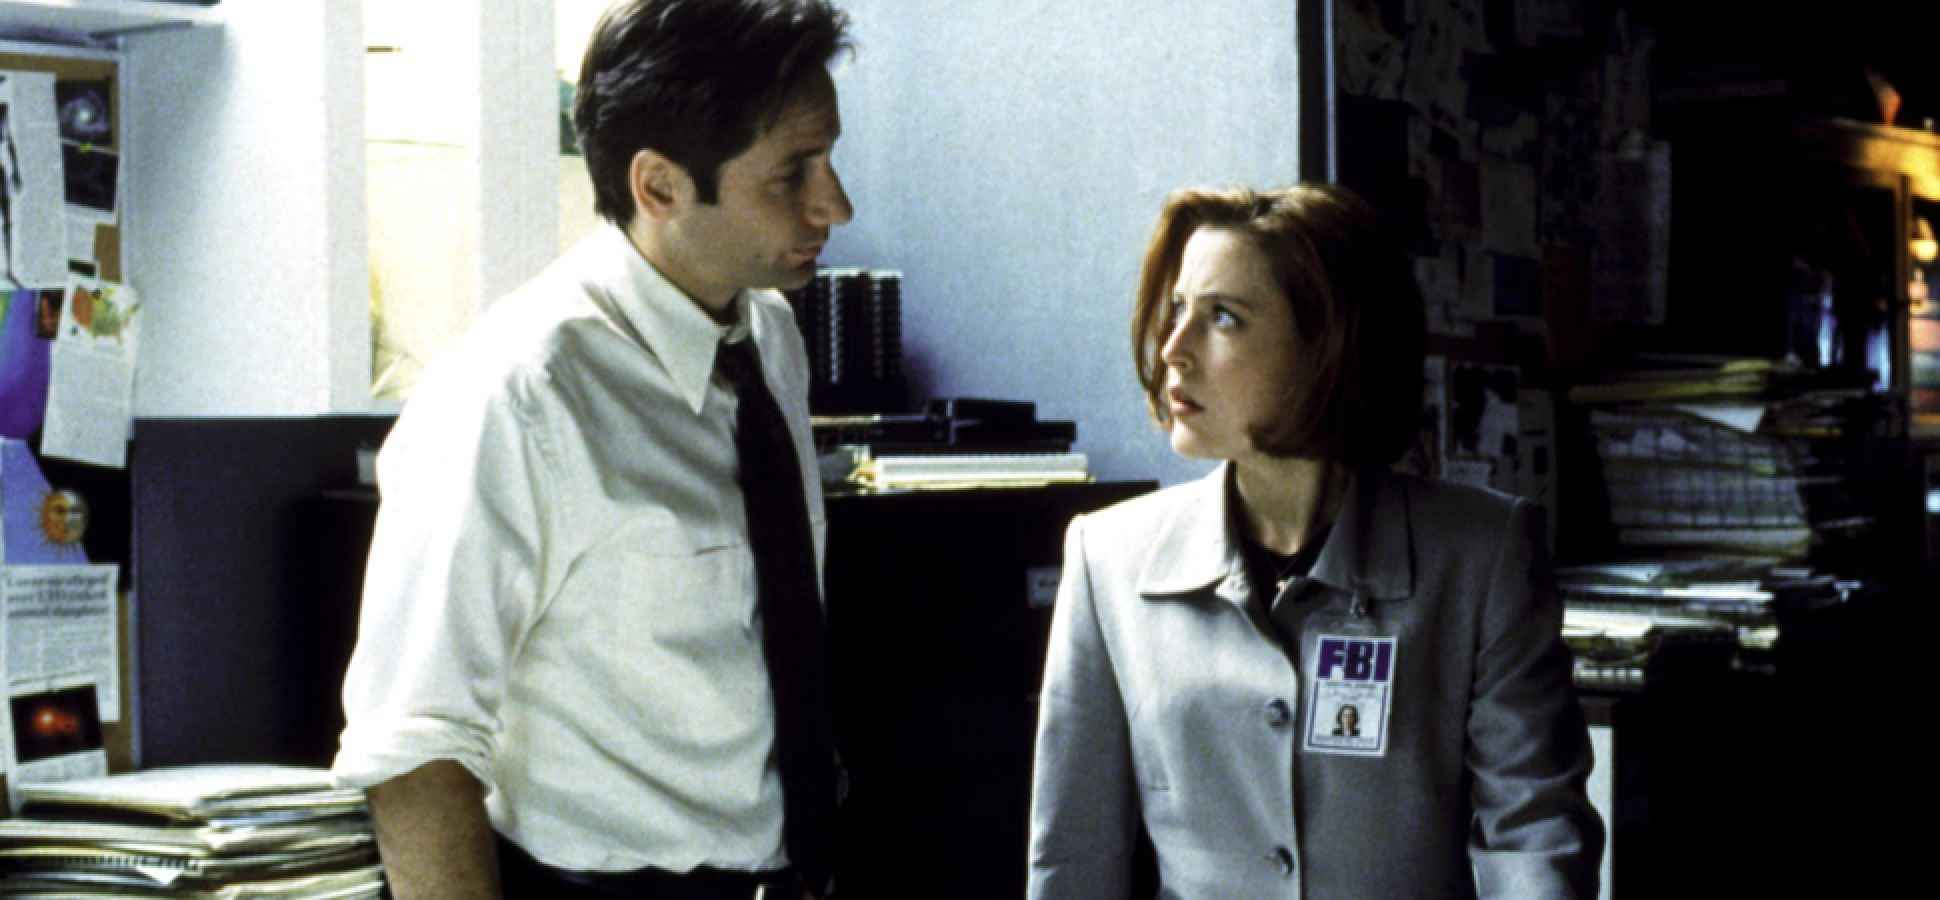 4 Things I Learned About Entrepreneurship as an FBI Agent